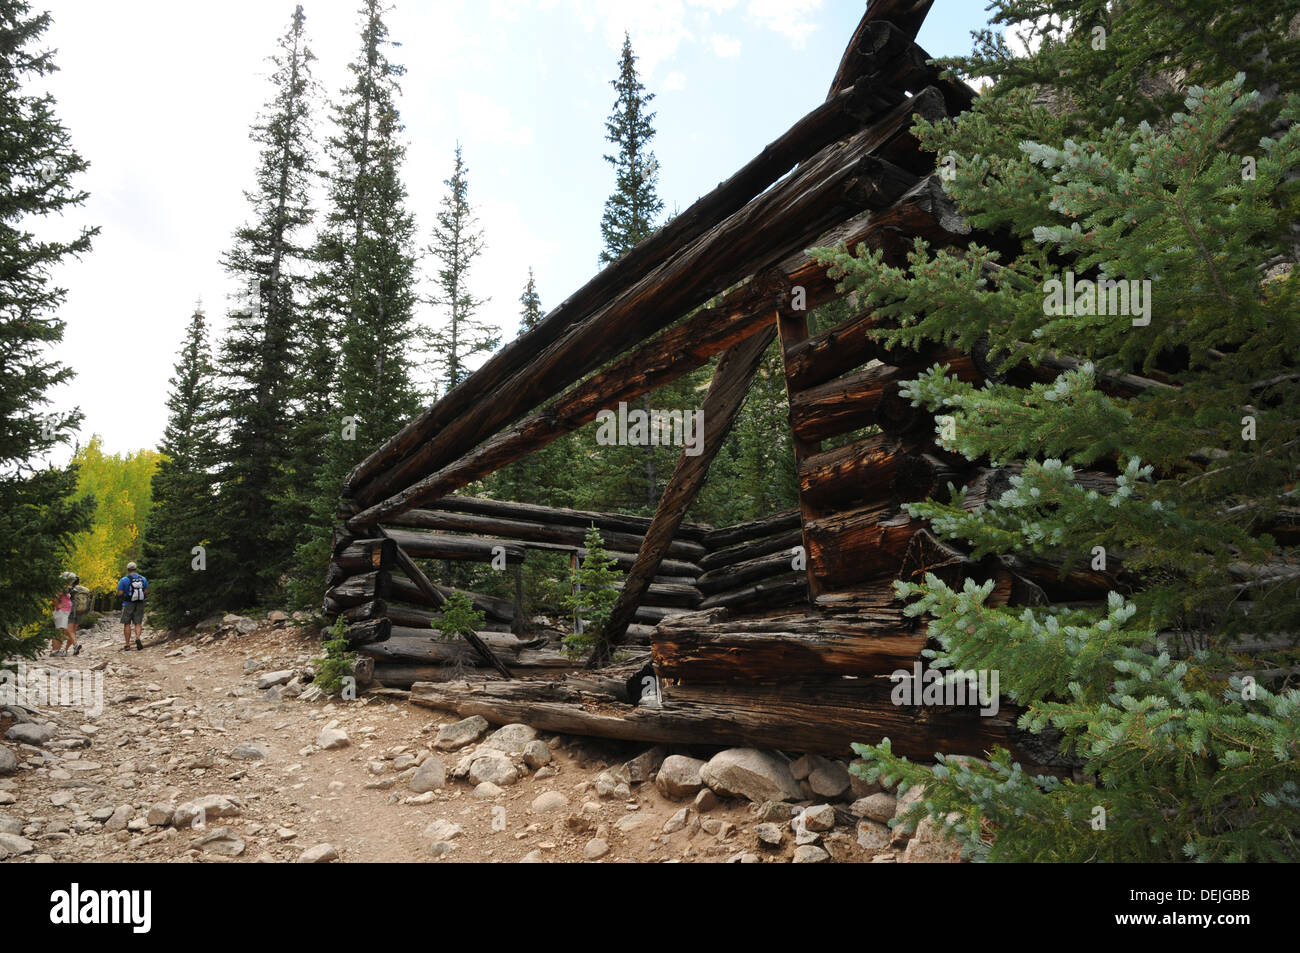 An abandoned mining cabin on the jeep trail up to Grizzly Lake, Chaffee County, Colorado. - Stock Image